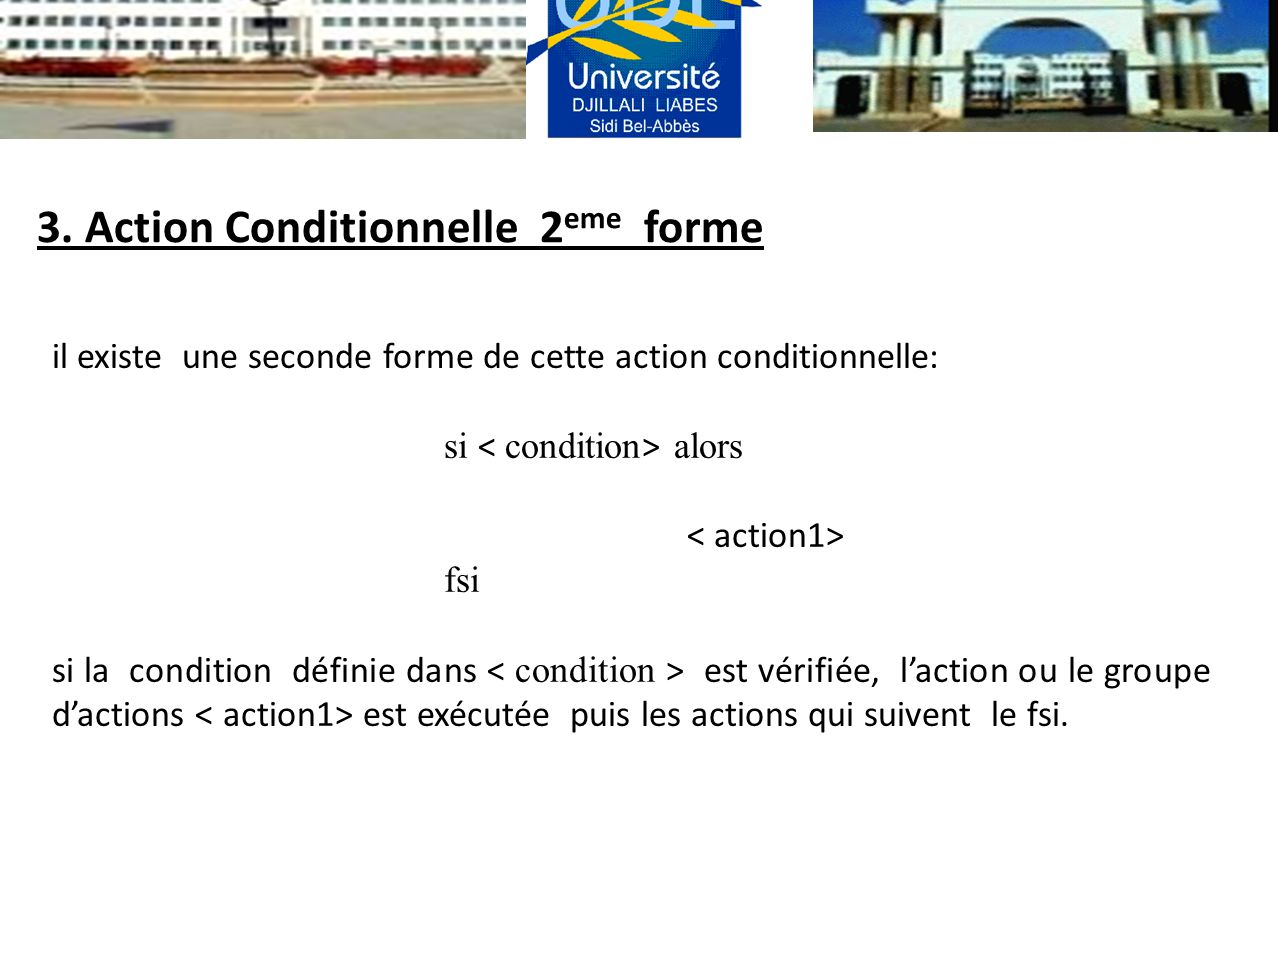 3. Action Conditionnelle 2eme forme